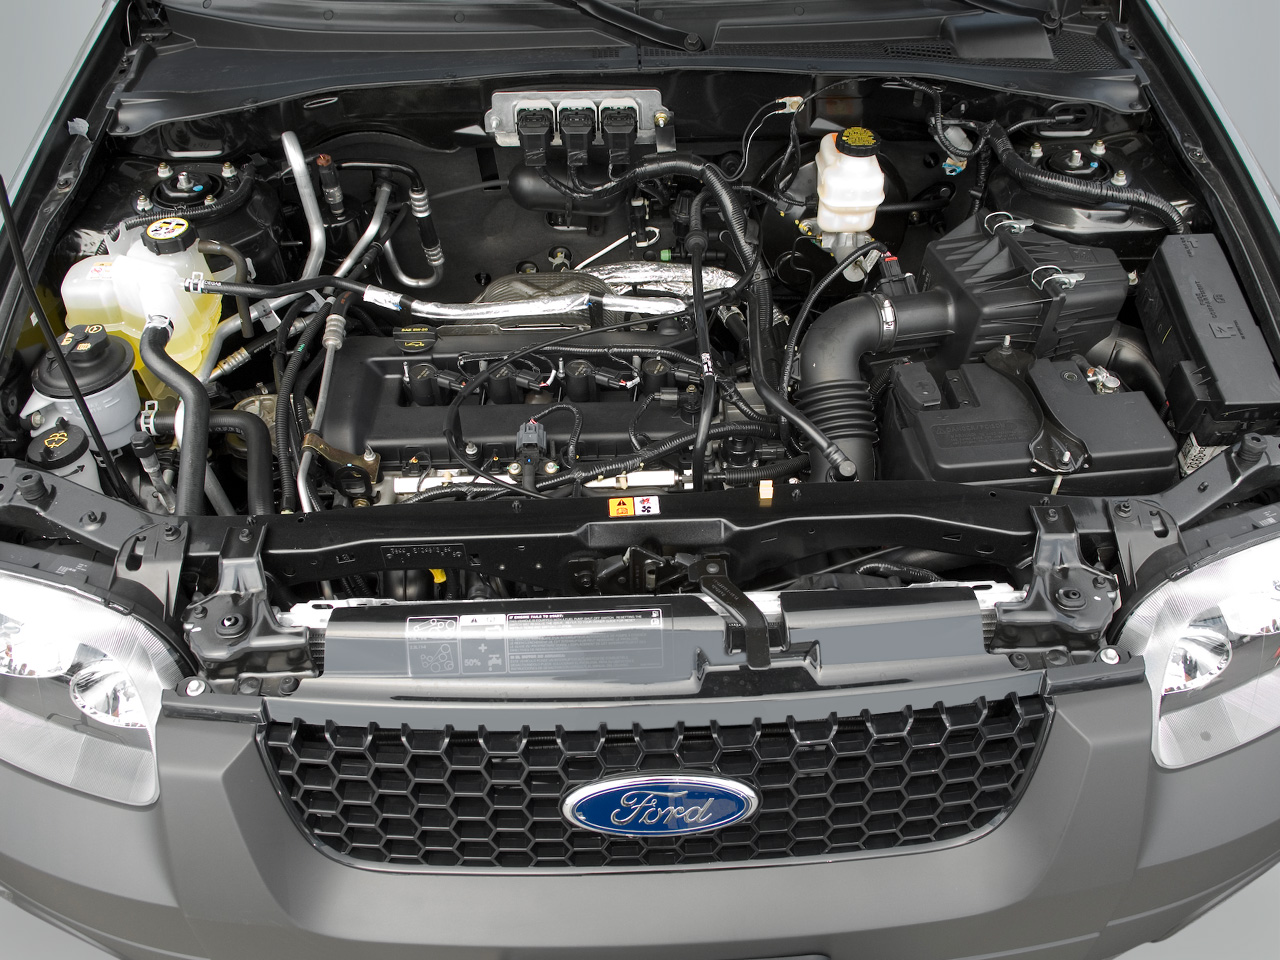 Ford Escape engine #1